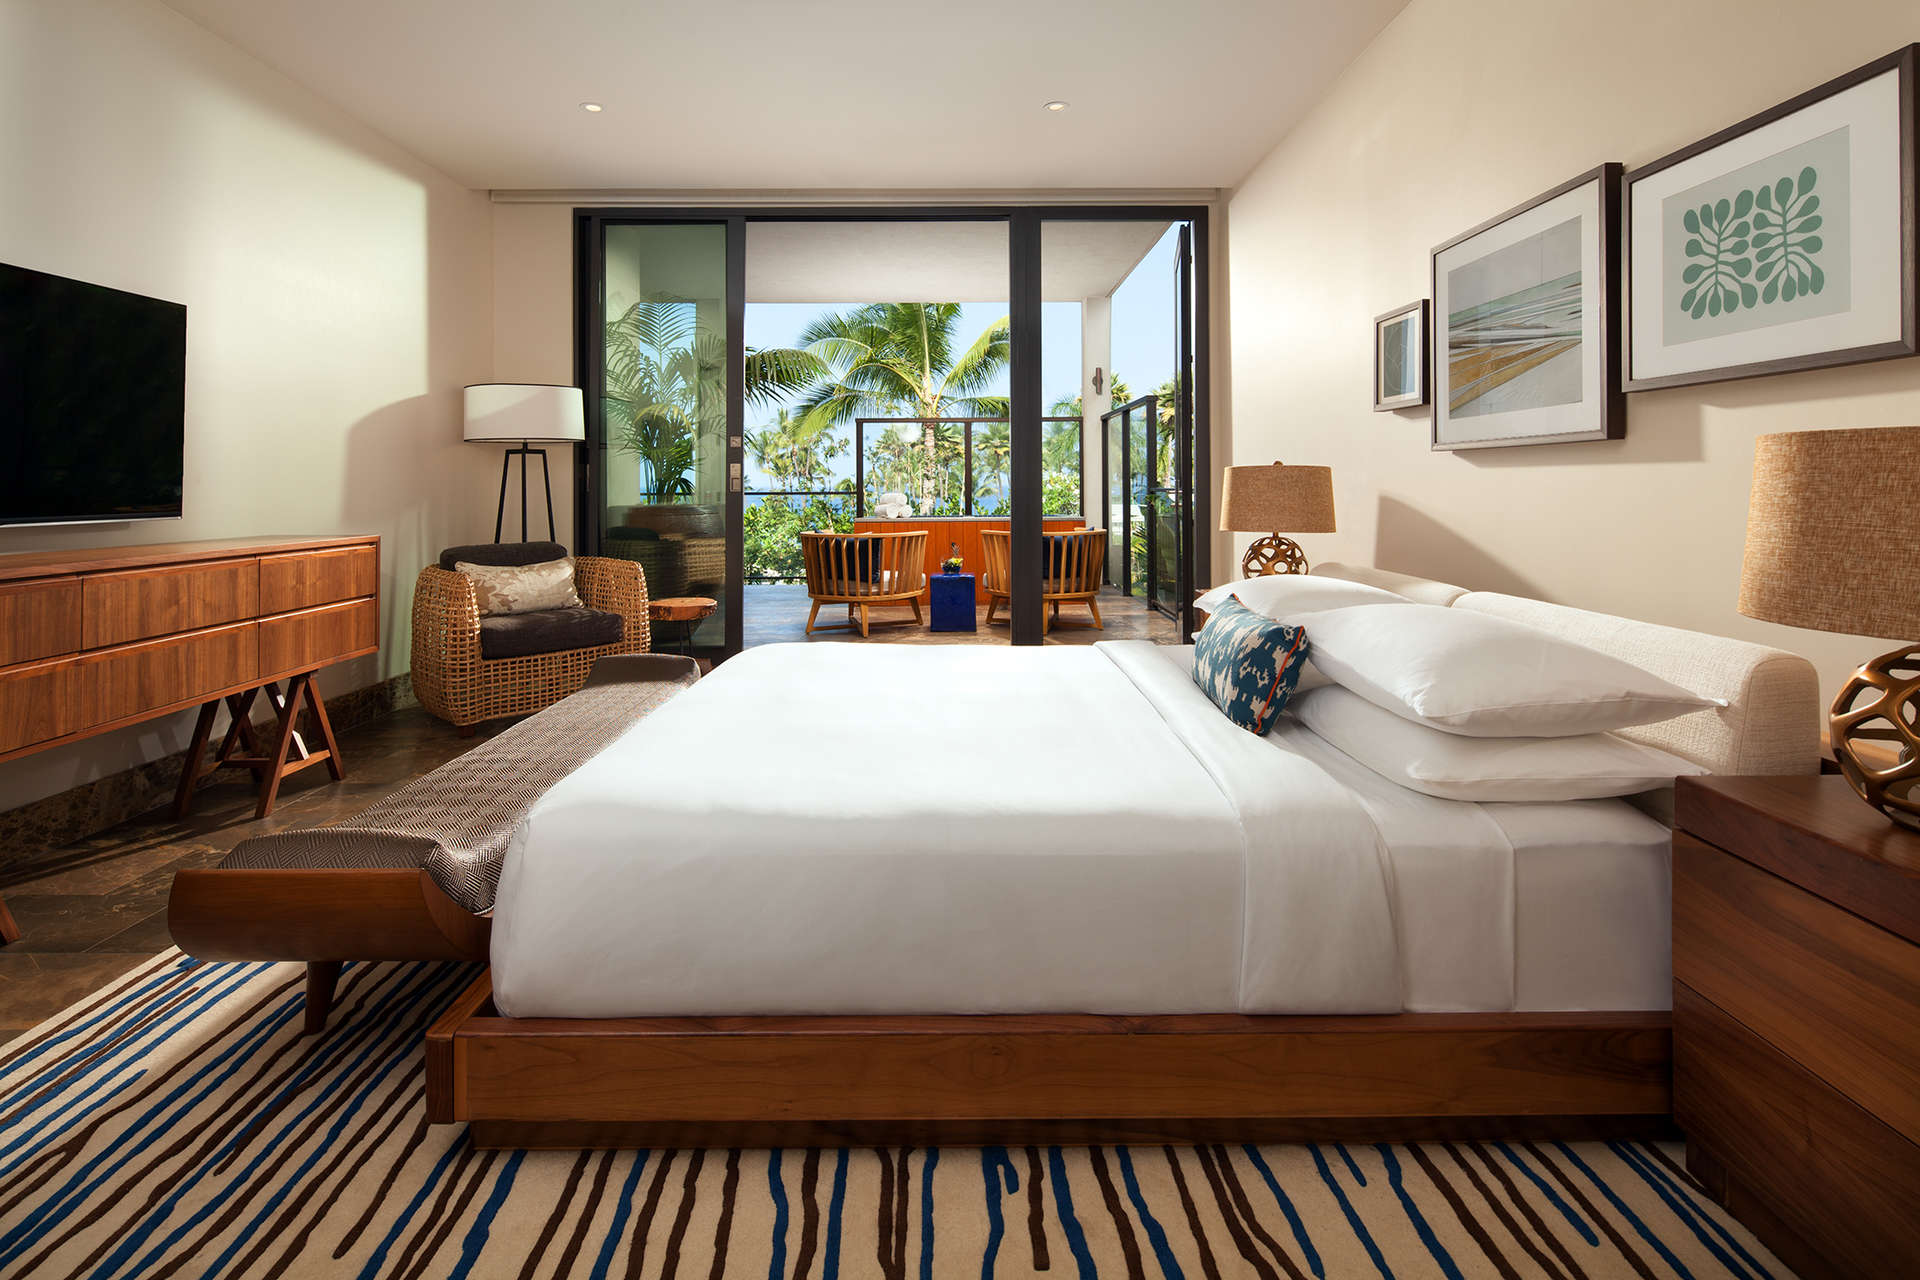 Luxury vacation rentals usa - Hawaii - Maui - Andaz maui wailea resort - Ocean View Villa | 3 Bedrooms - Image 1/5